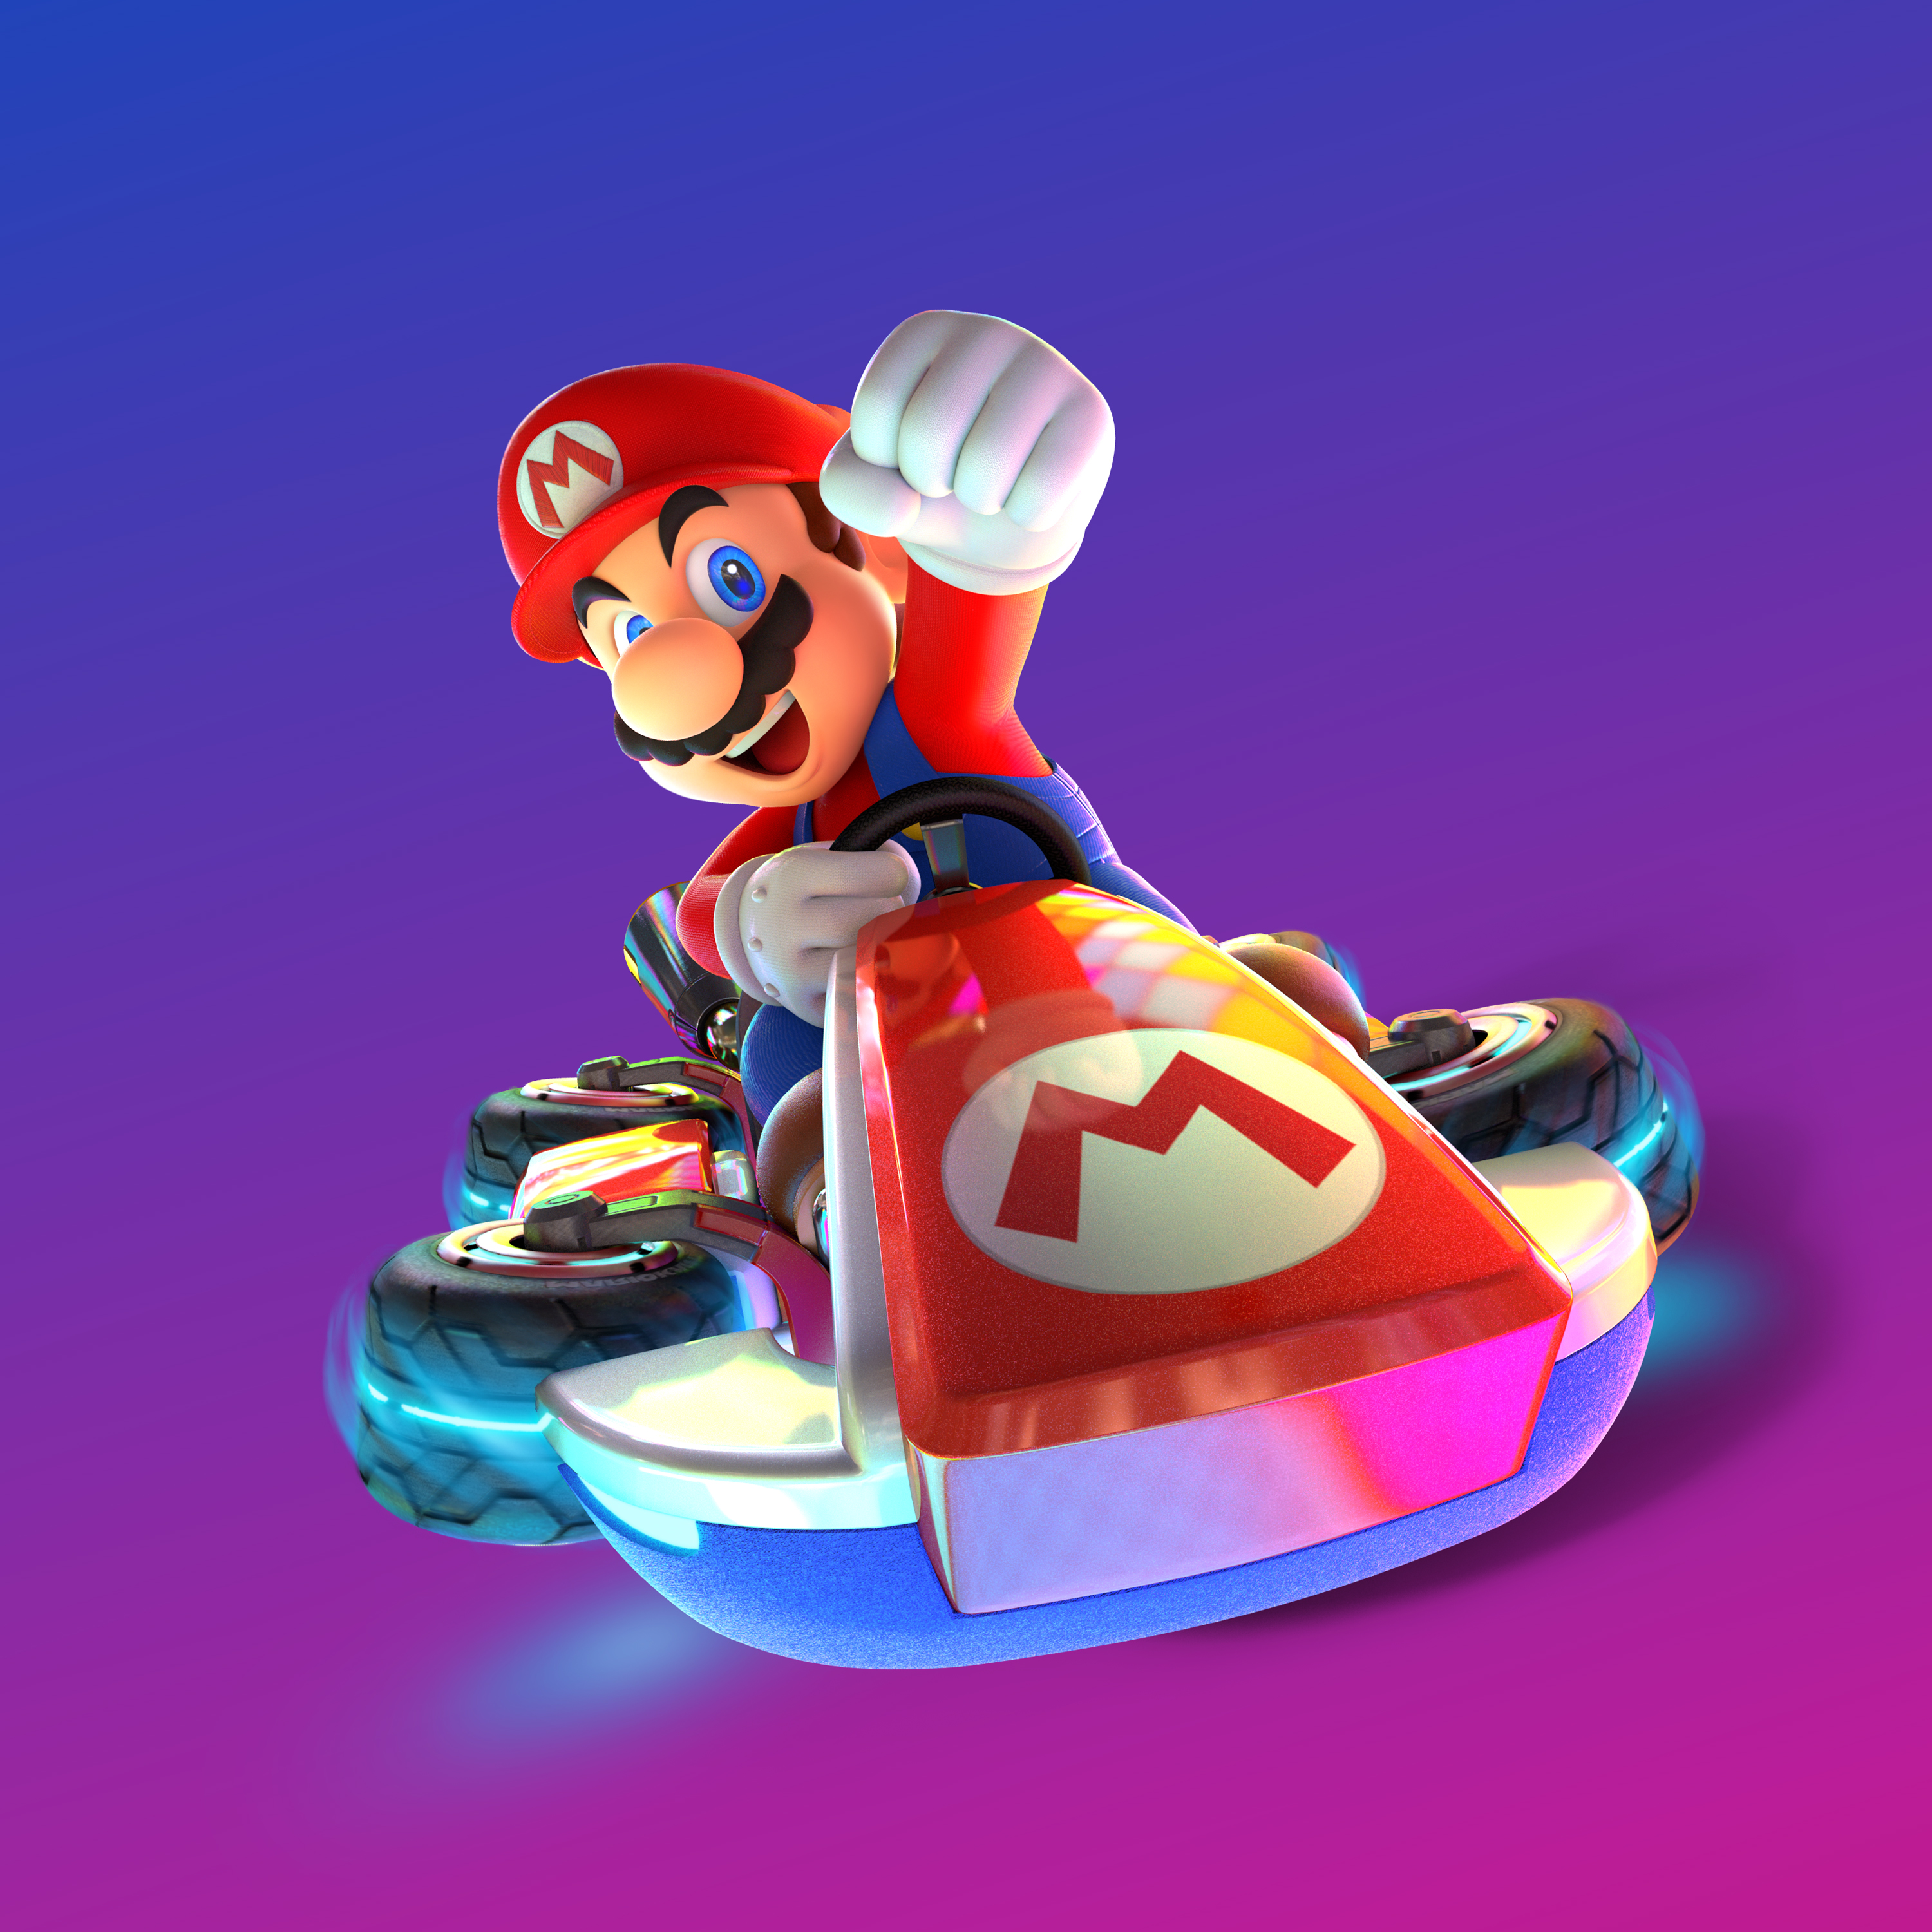 Nintendo switch games mario kart 8 deluxe